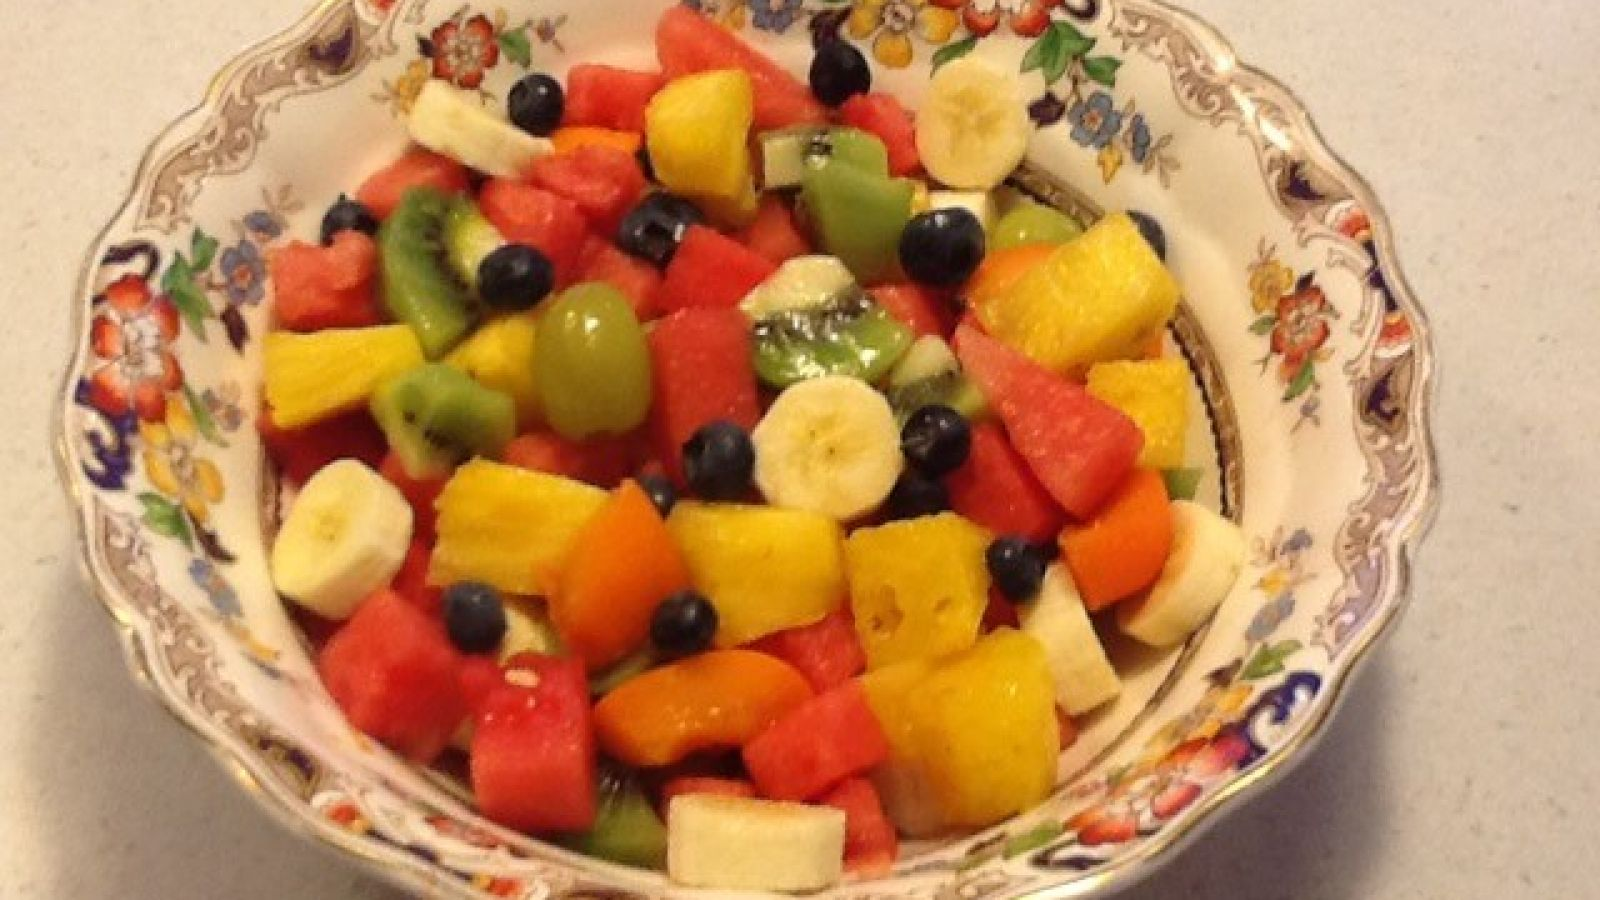 Breakfasts include fresh fruit.